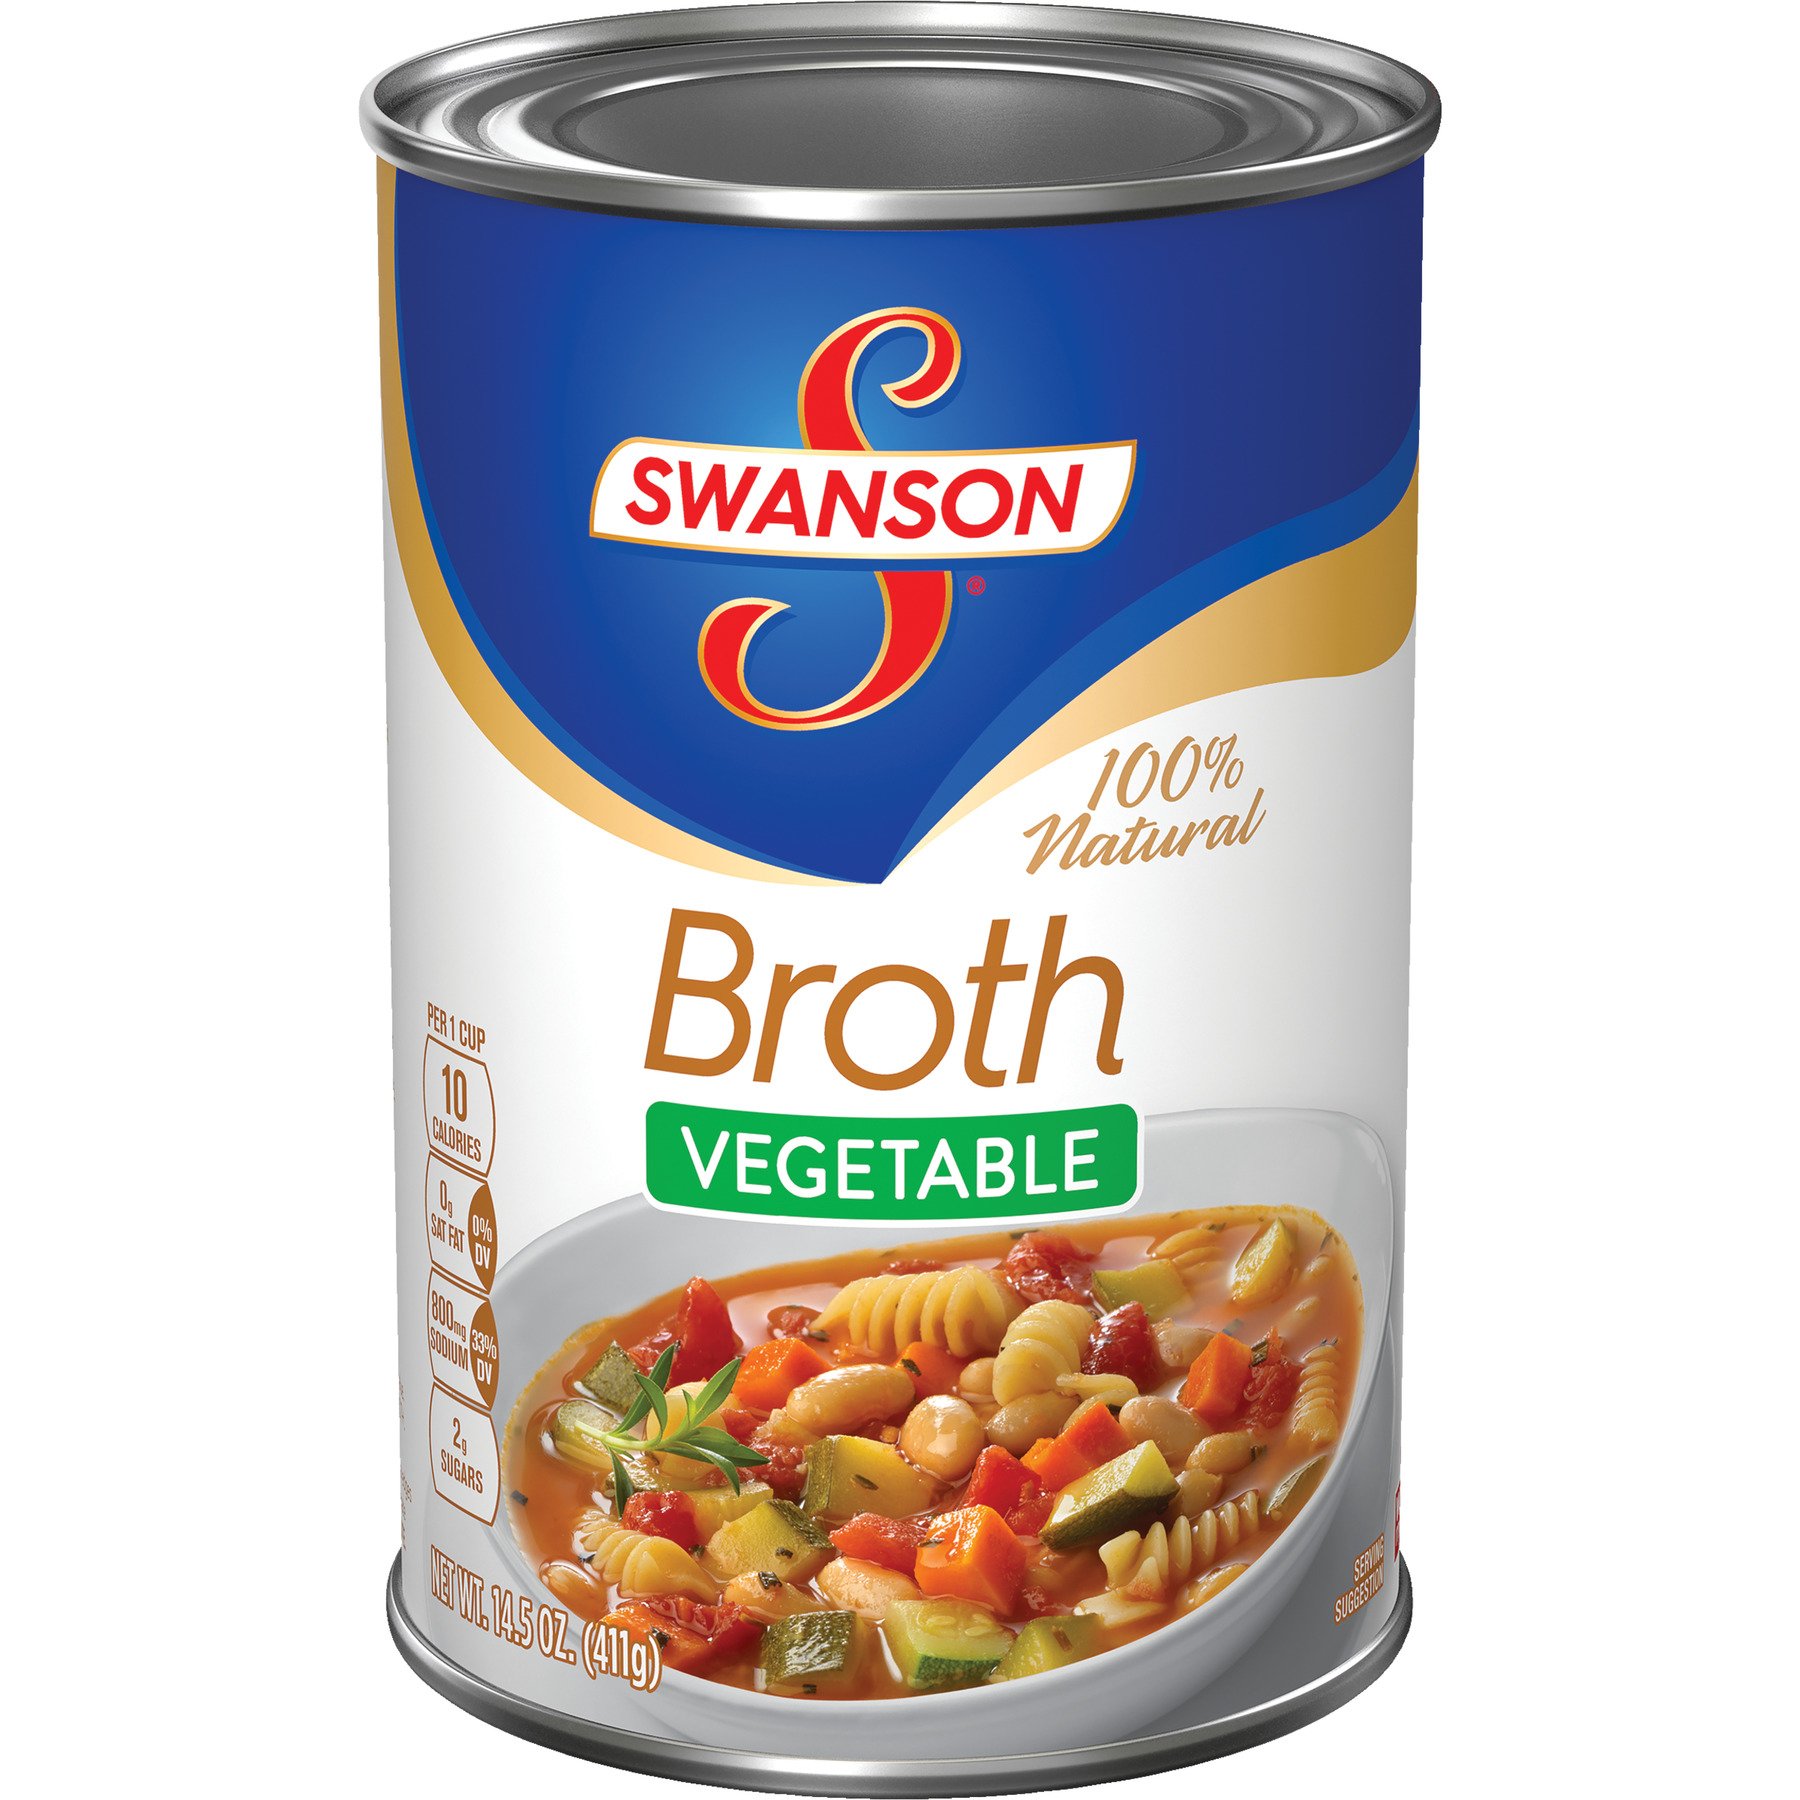 Swanson Vegetable Broth, 14.5 oz Can (8 Packs)